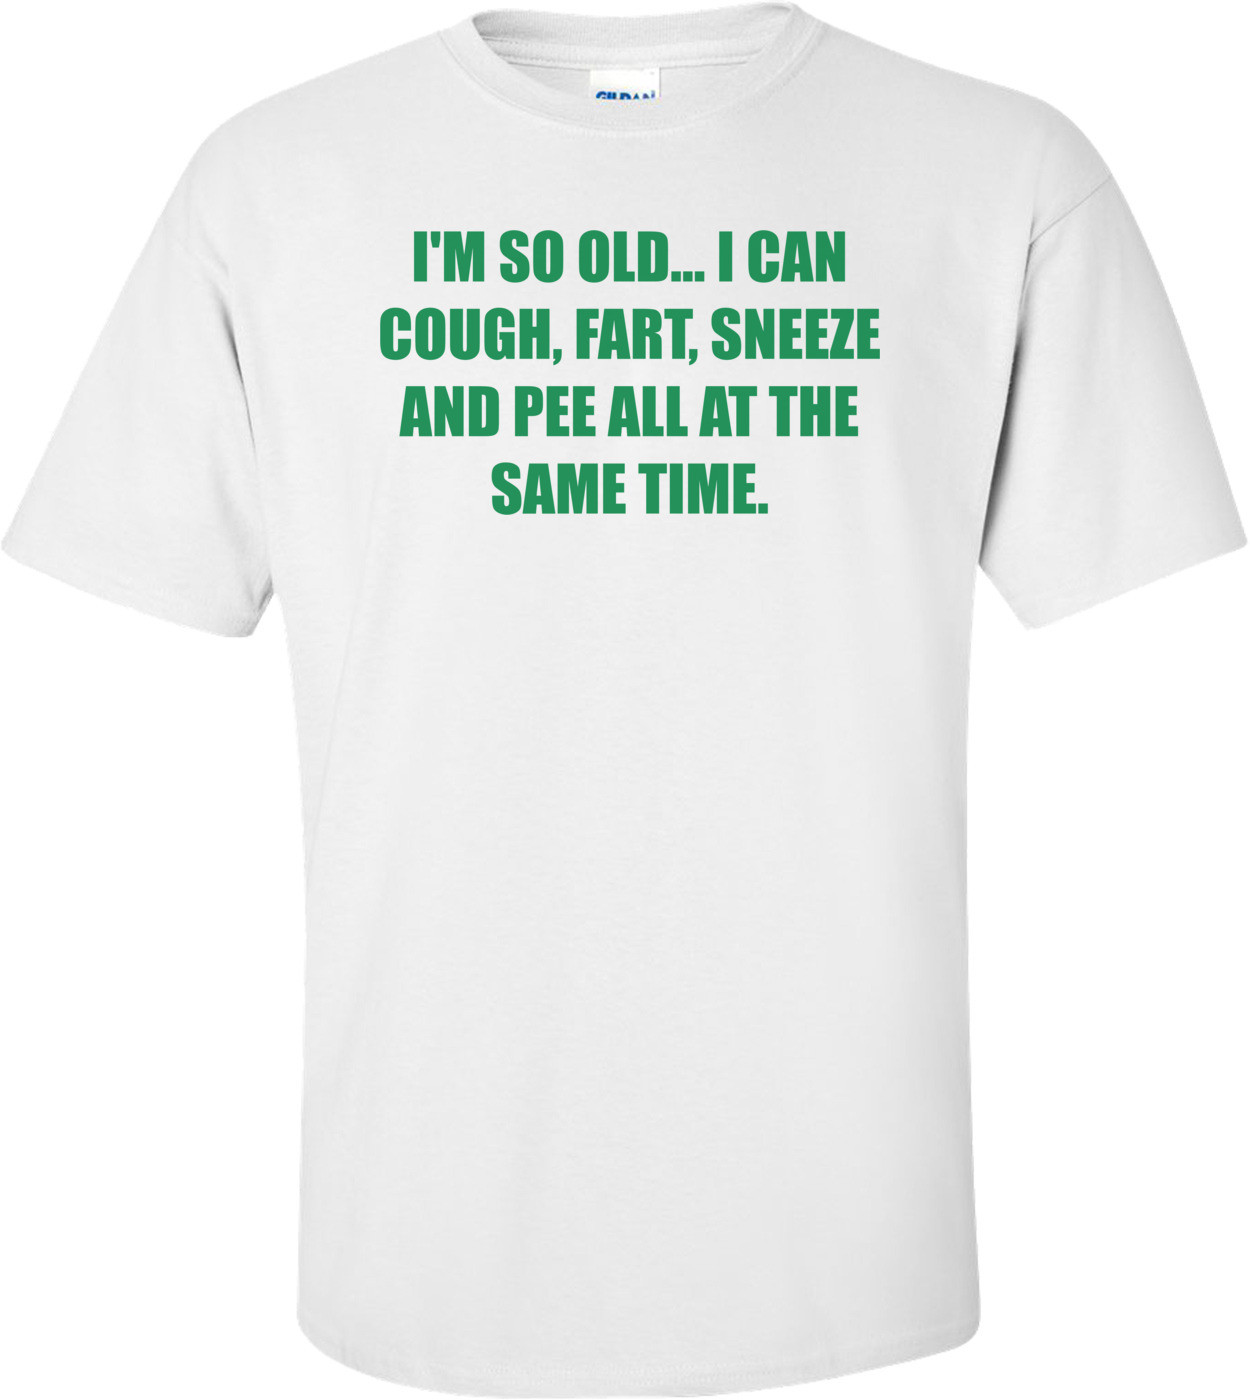 I'M SO OLD... I CAN COUGH, FART, SNEEZE AND PEE ALL AT THE SAME TIME. Shirt